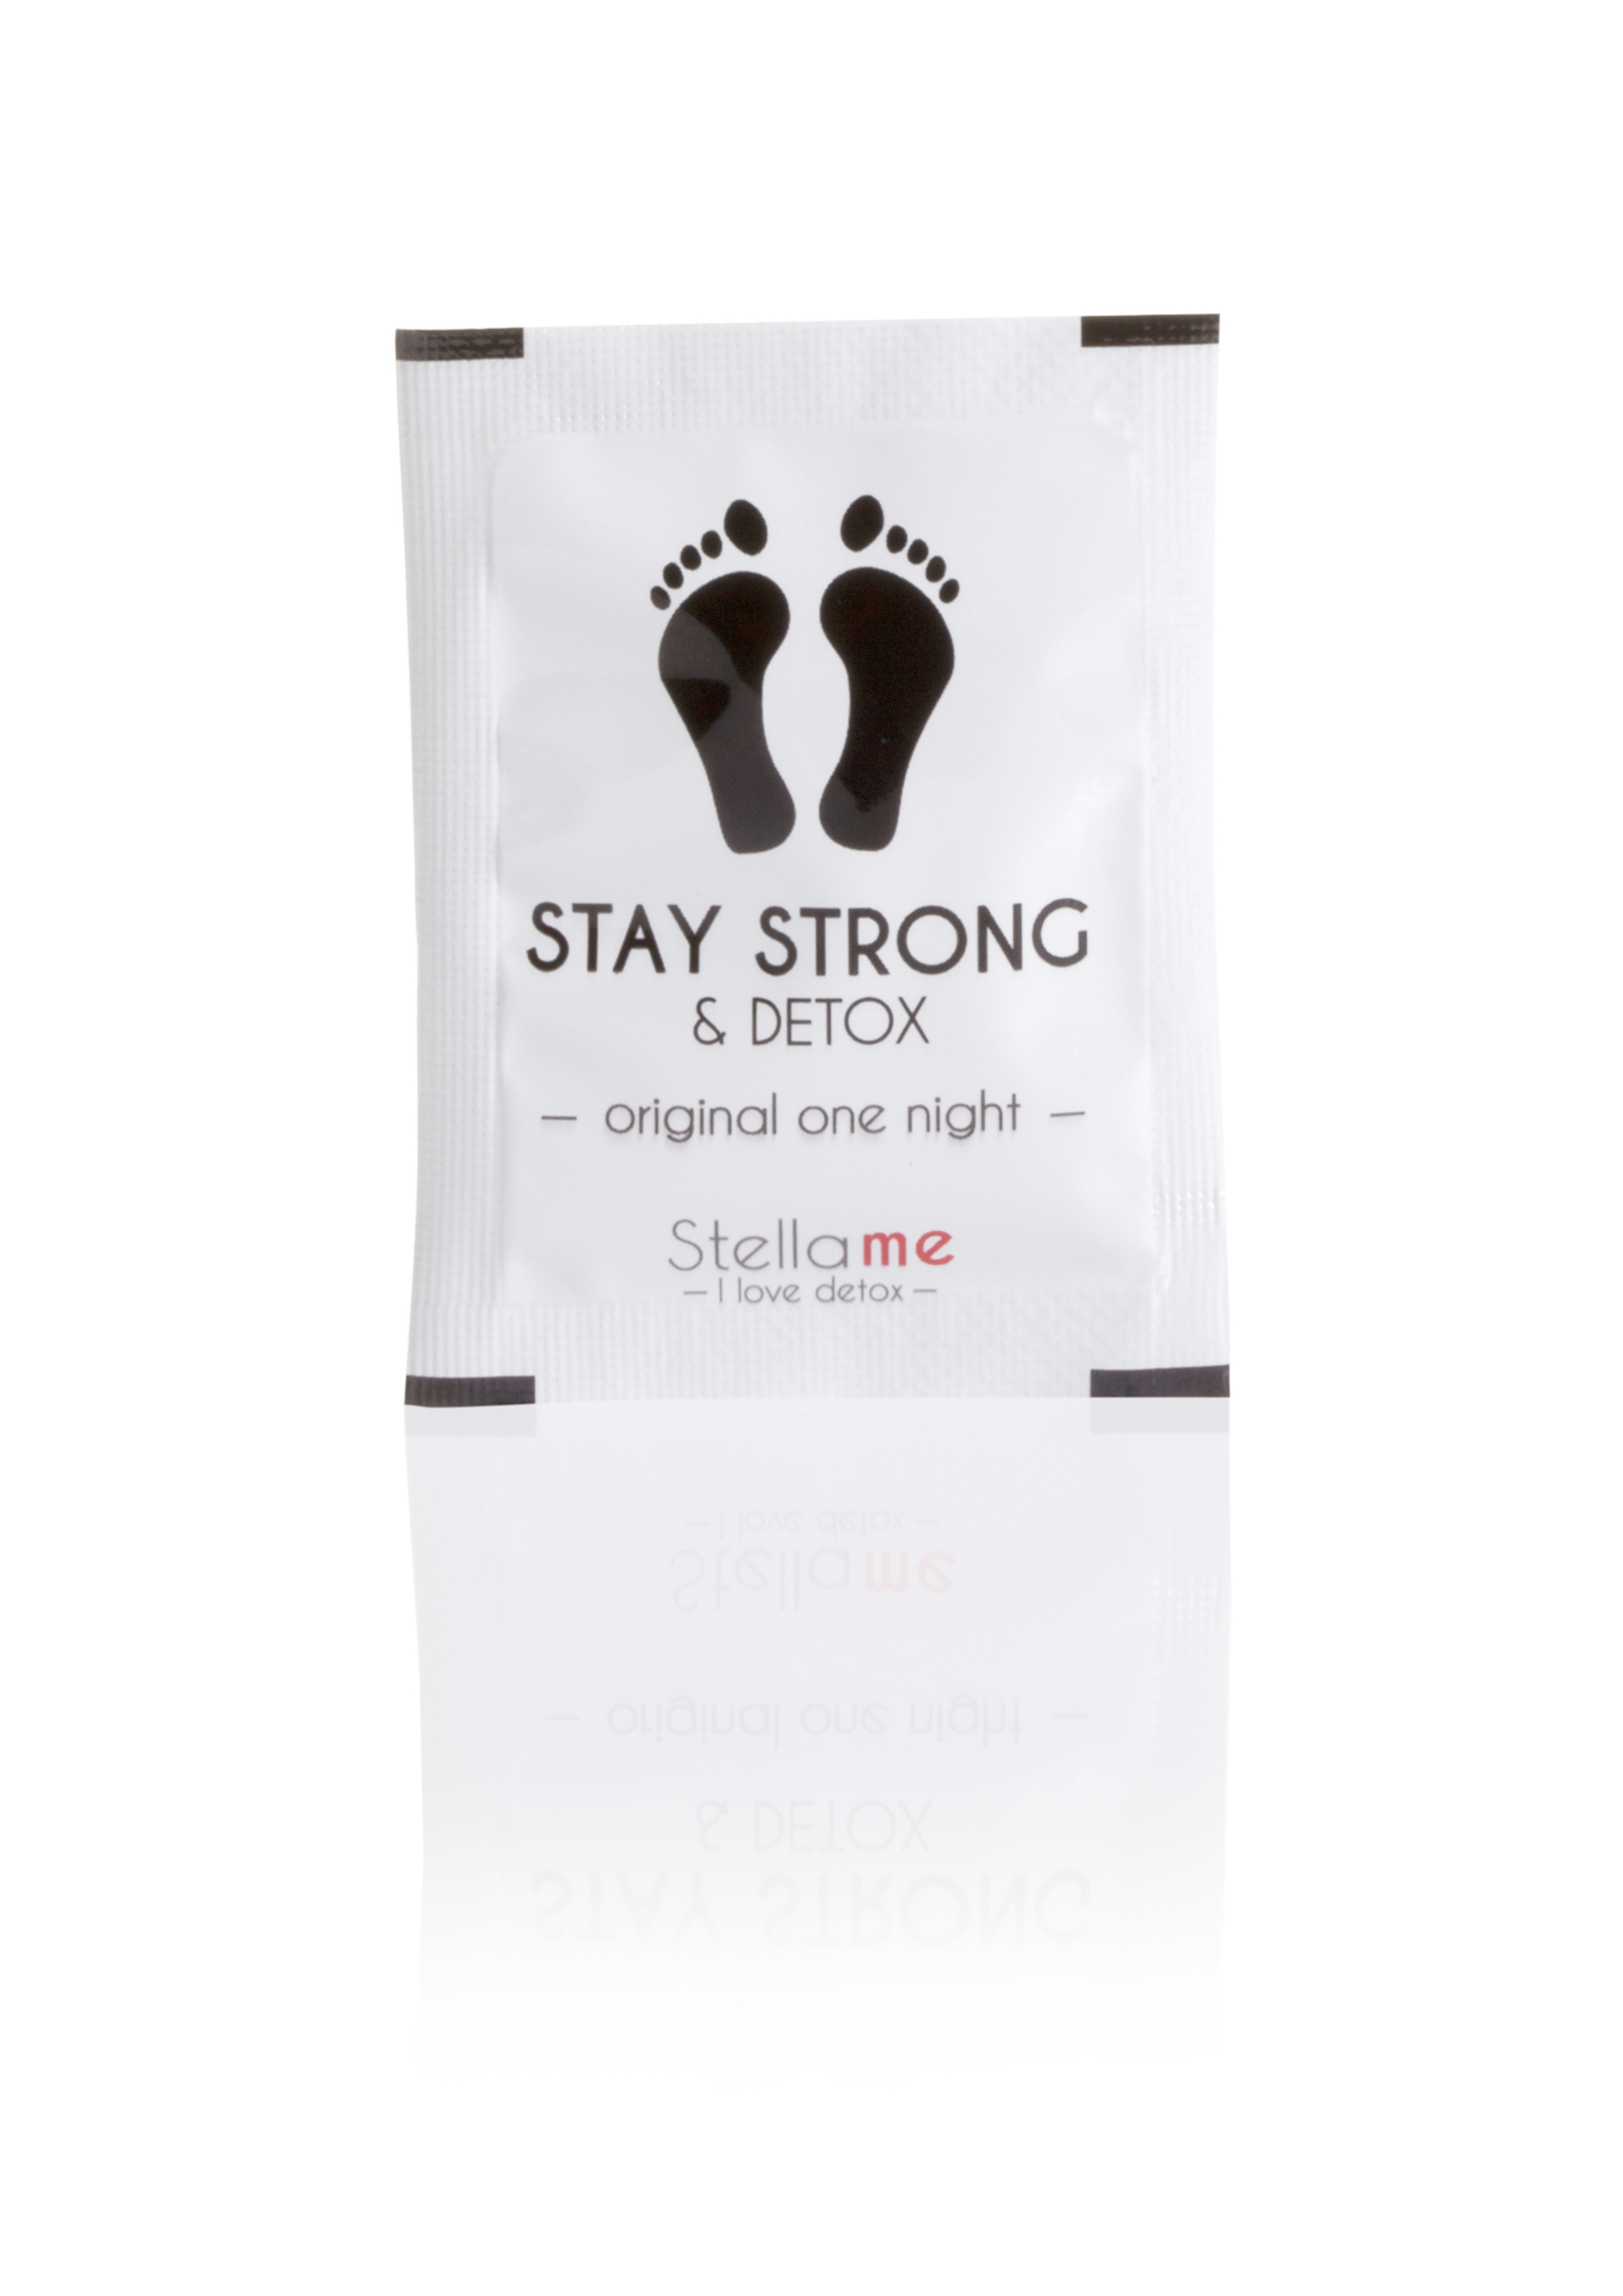 Turmalin im Doppelpack Stay Strong 7 Night & #shecan